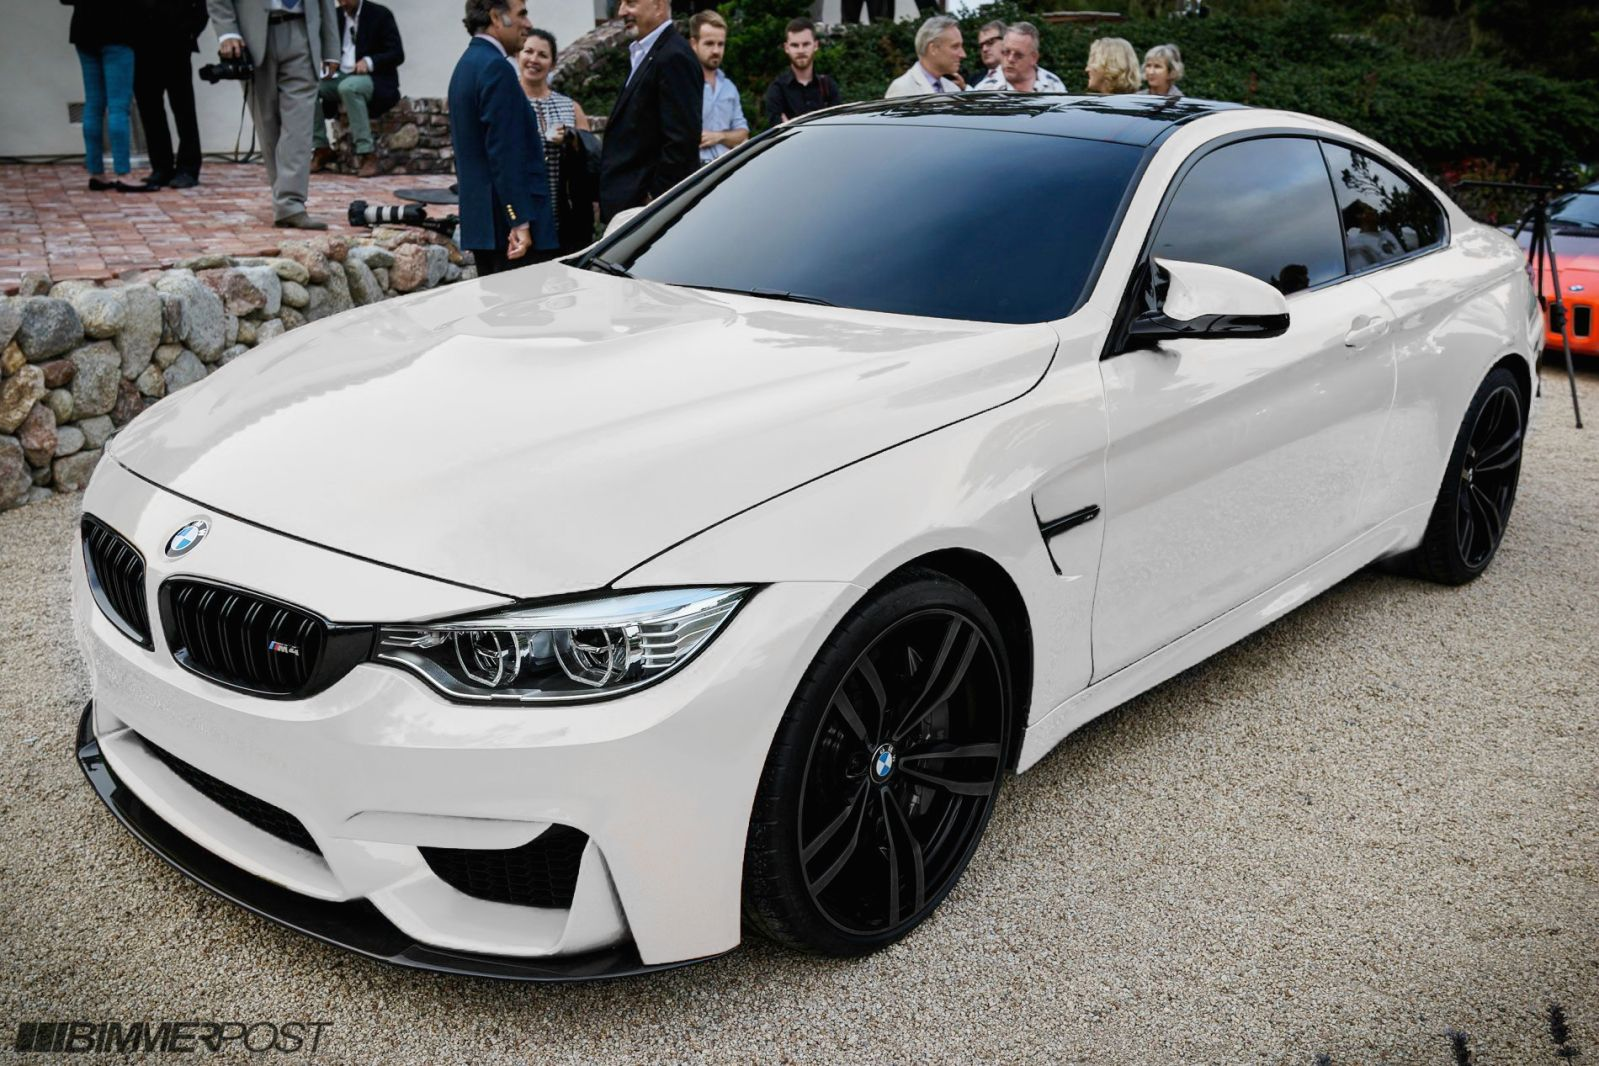 Bmw M4 White With Black Rims Whips Bmw Cars Bmw M4